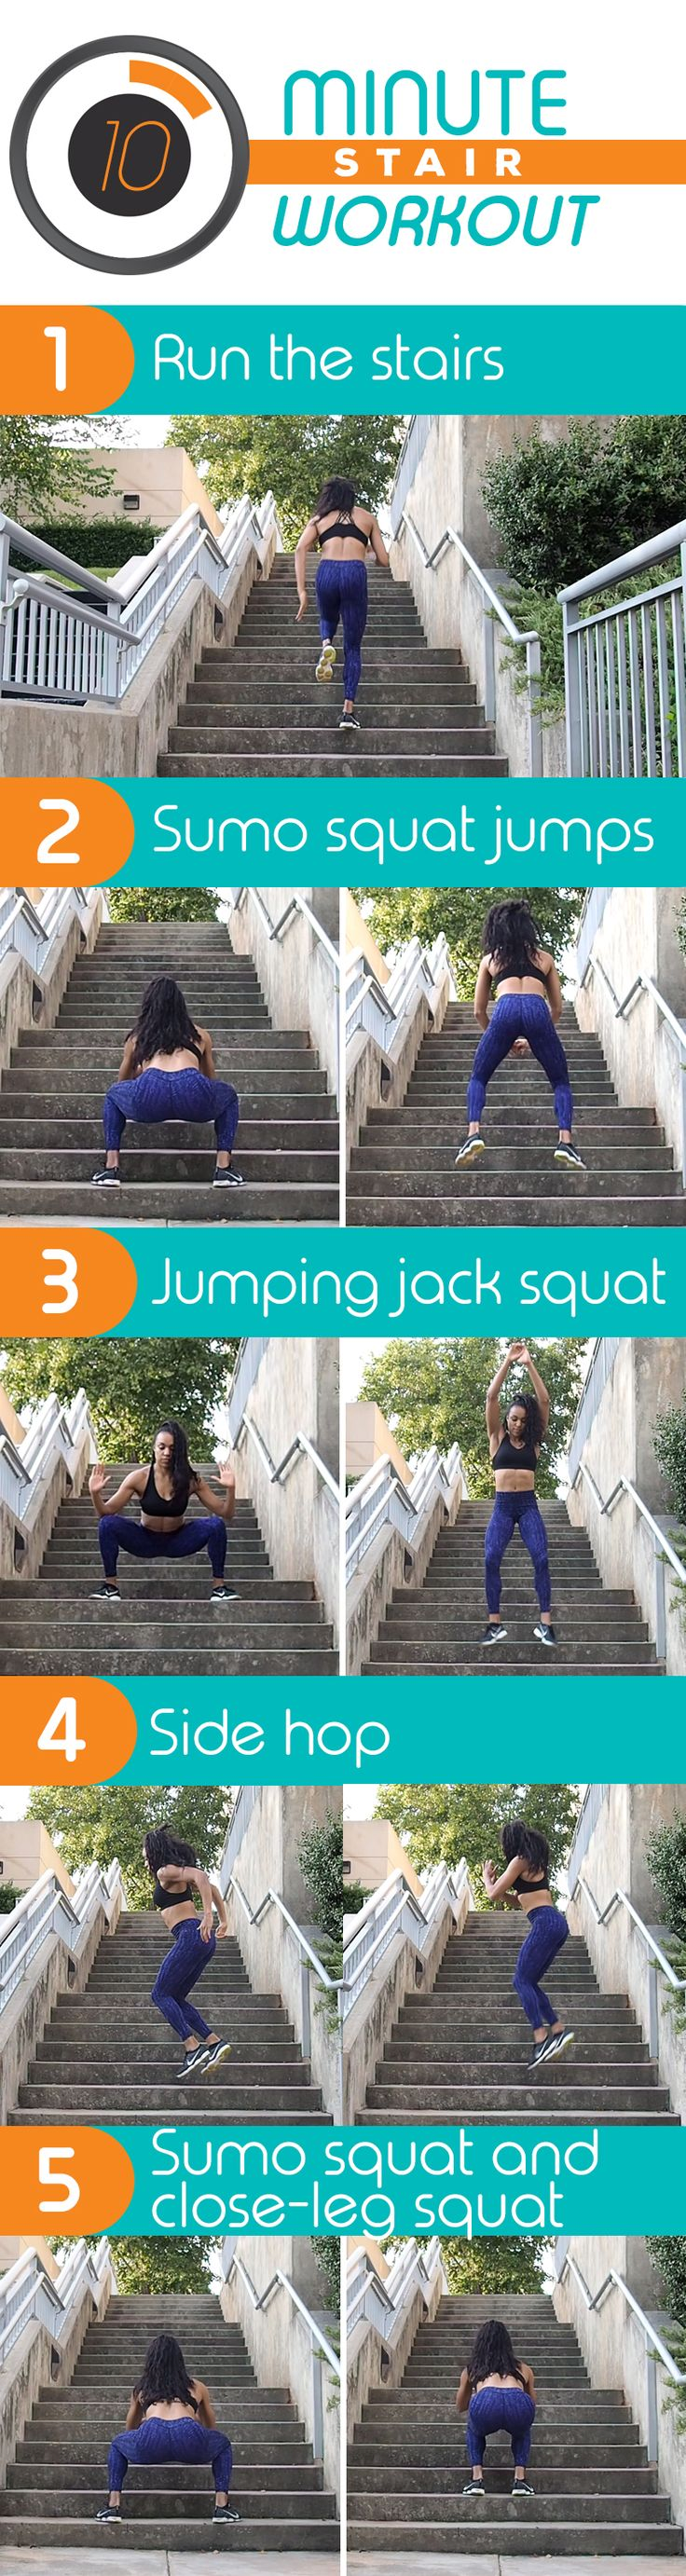 Try this easy stair workout to tone your legs and butt in 10 minutes!